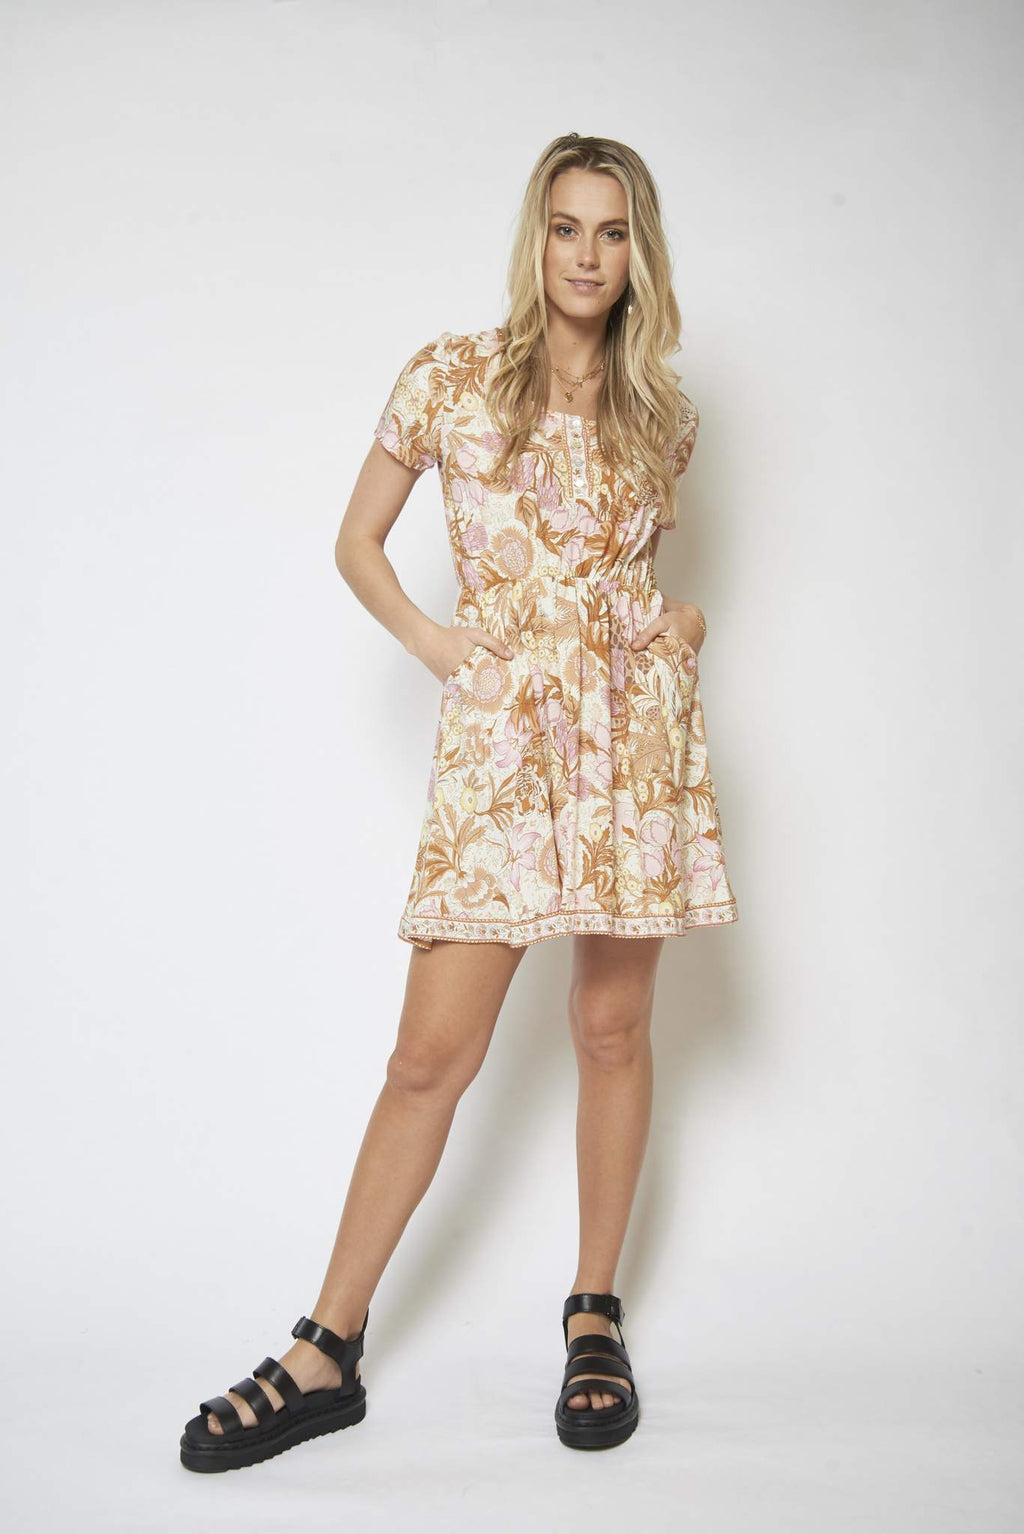 Lete Boho mini dress in creamy animal floral print